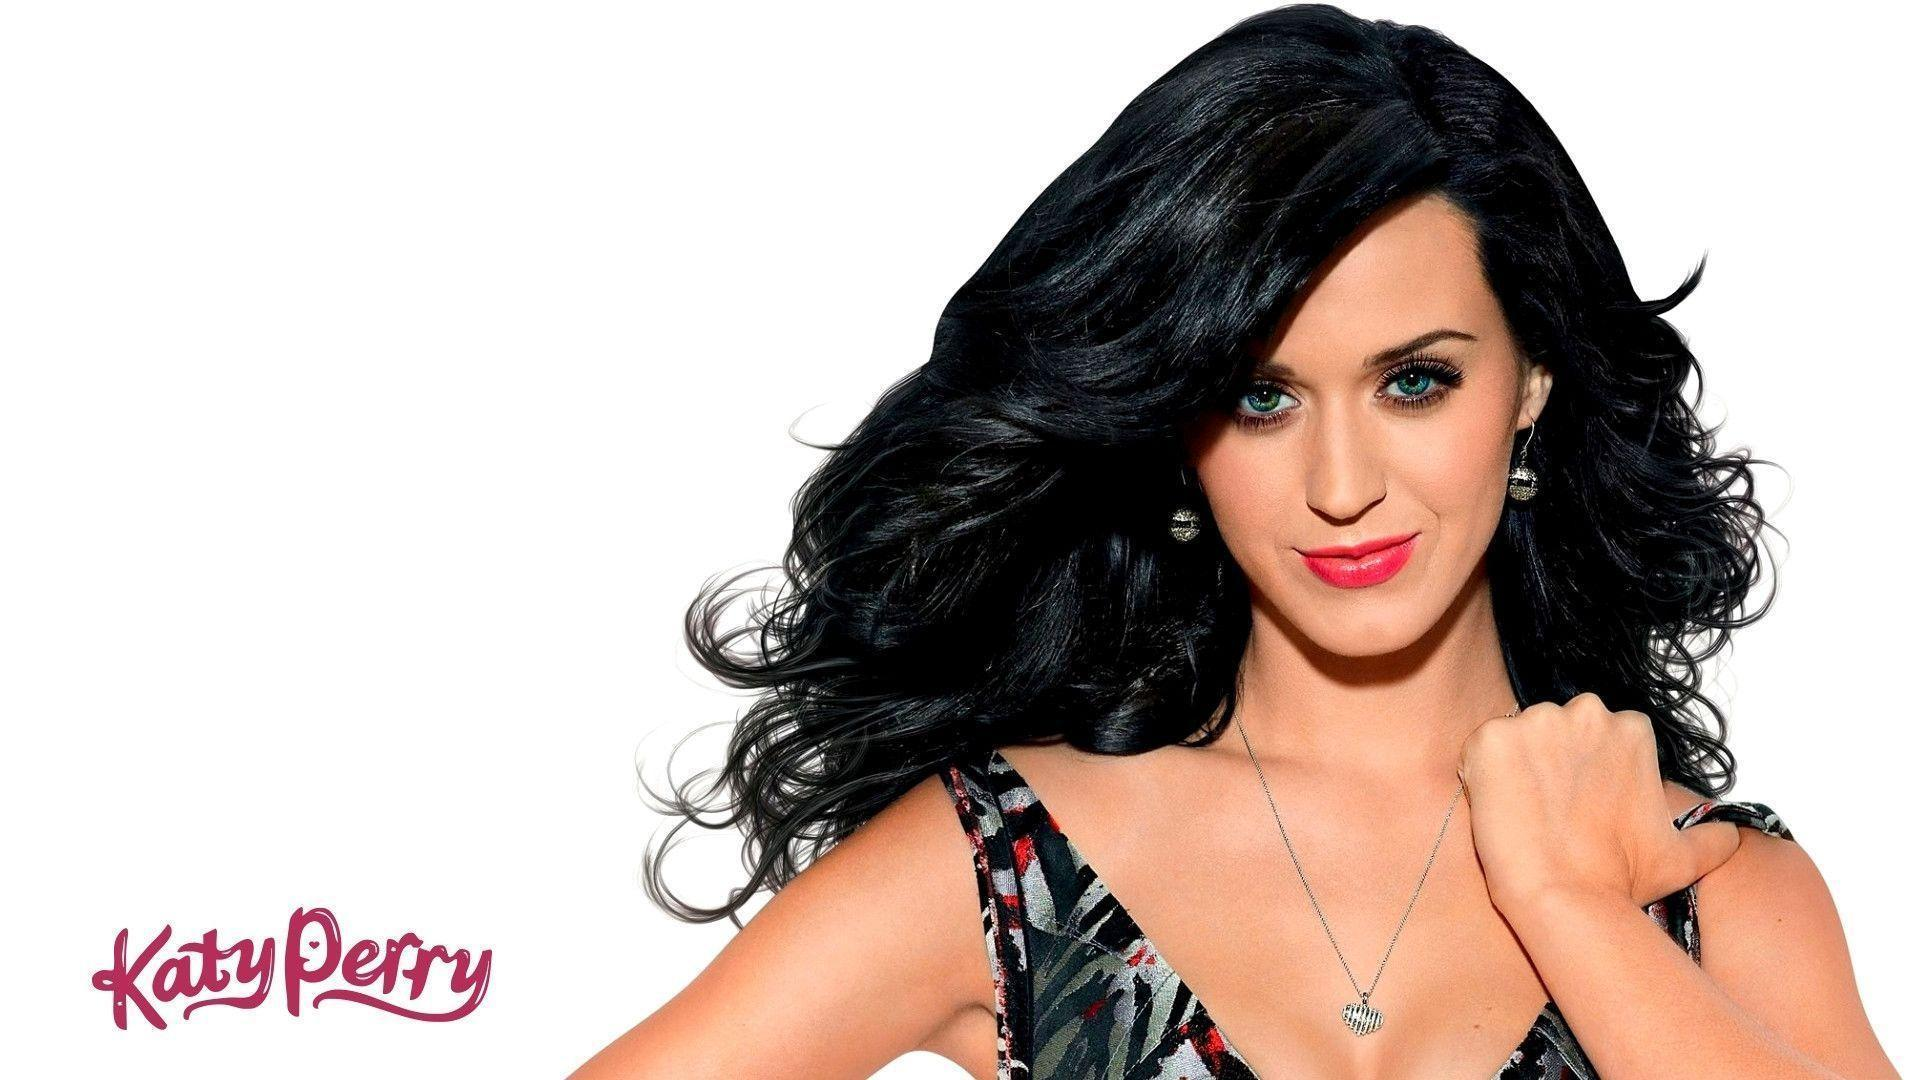 katy perry wallpaper 1080p - photo #15